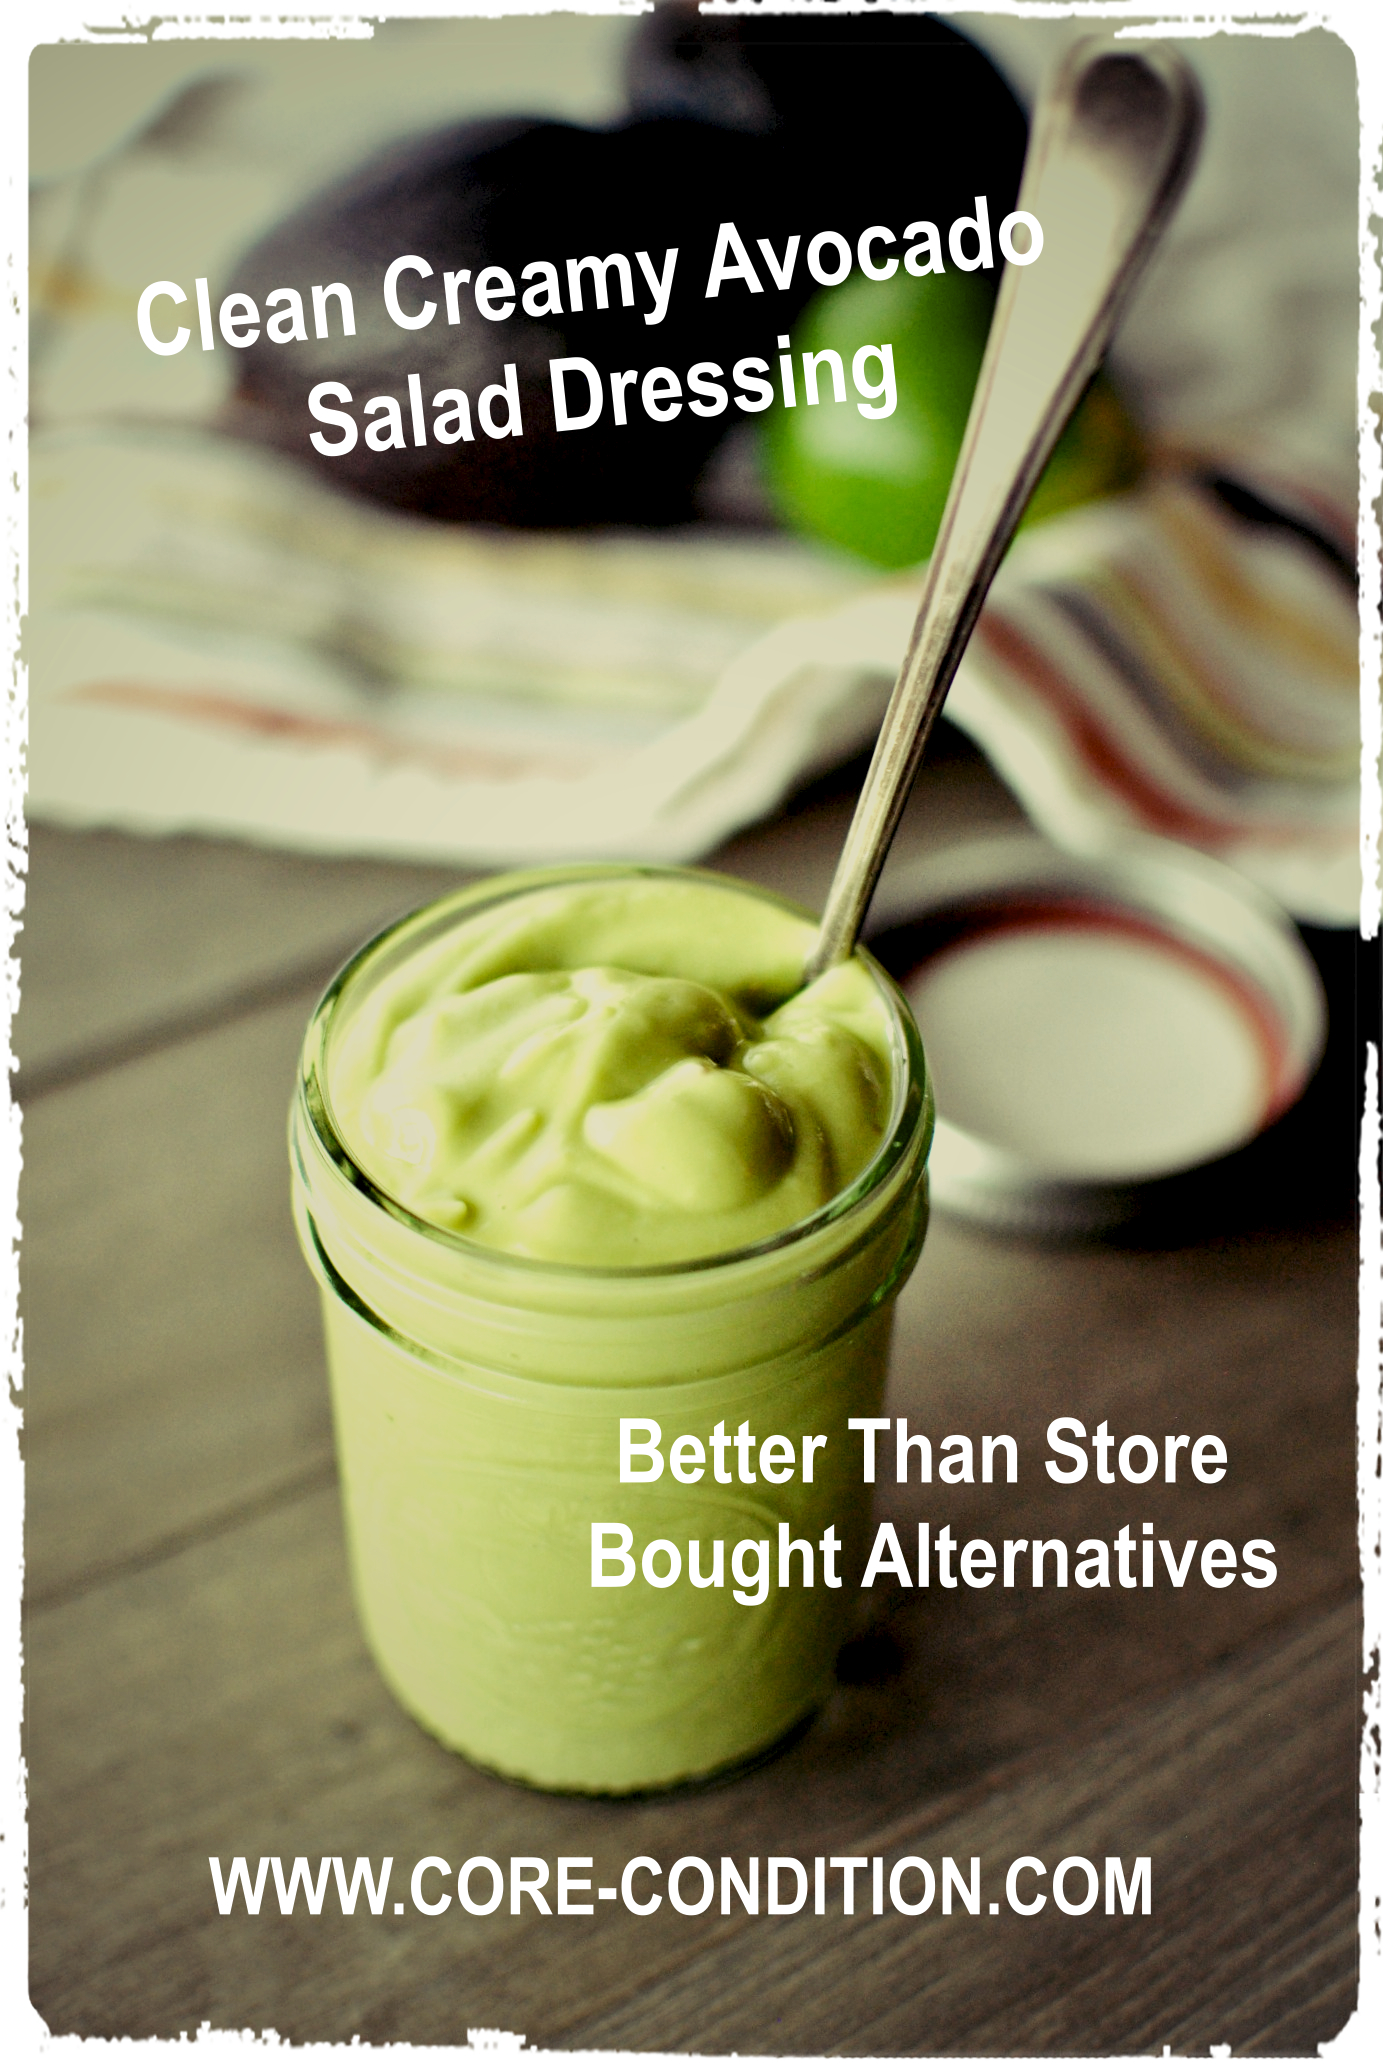 Clean Creamy Avocado Salad Dressing – Better Than Store Bought Alternatives